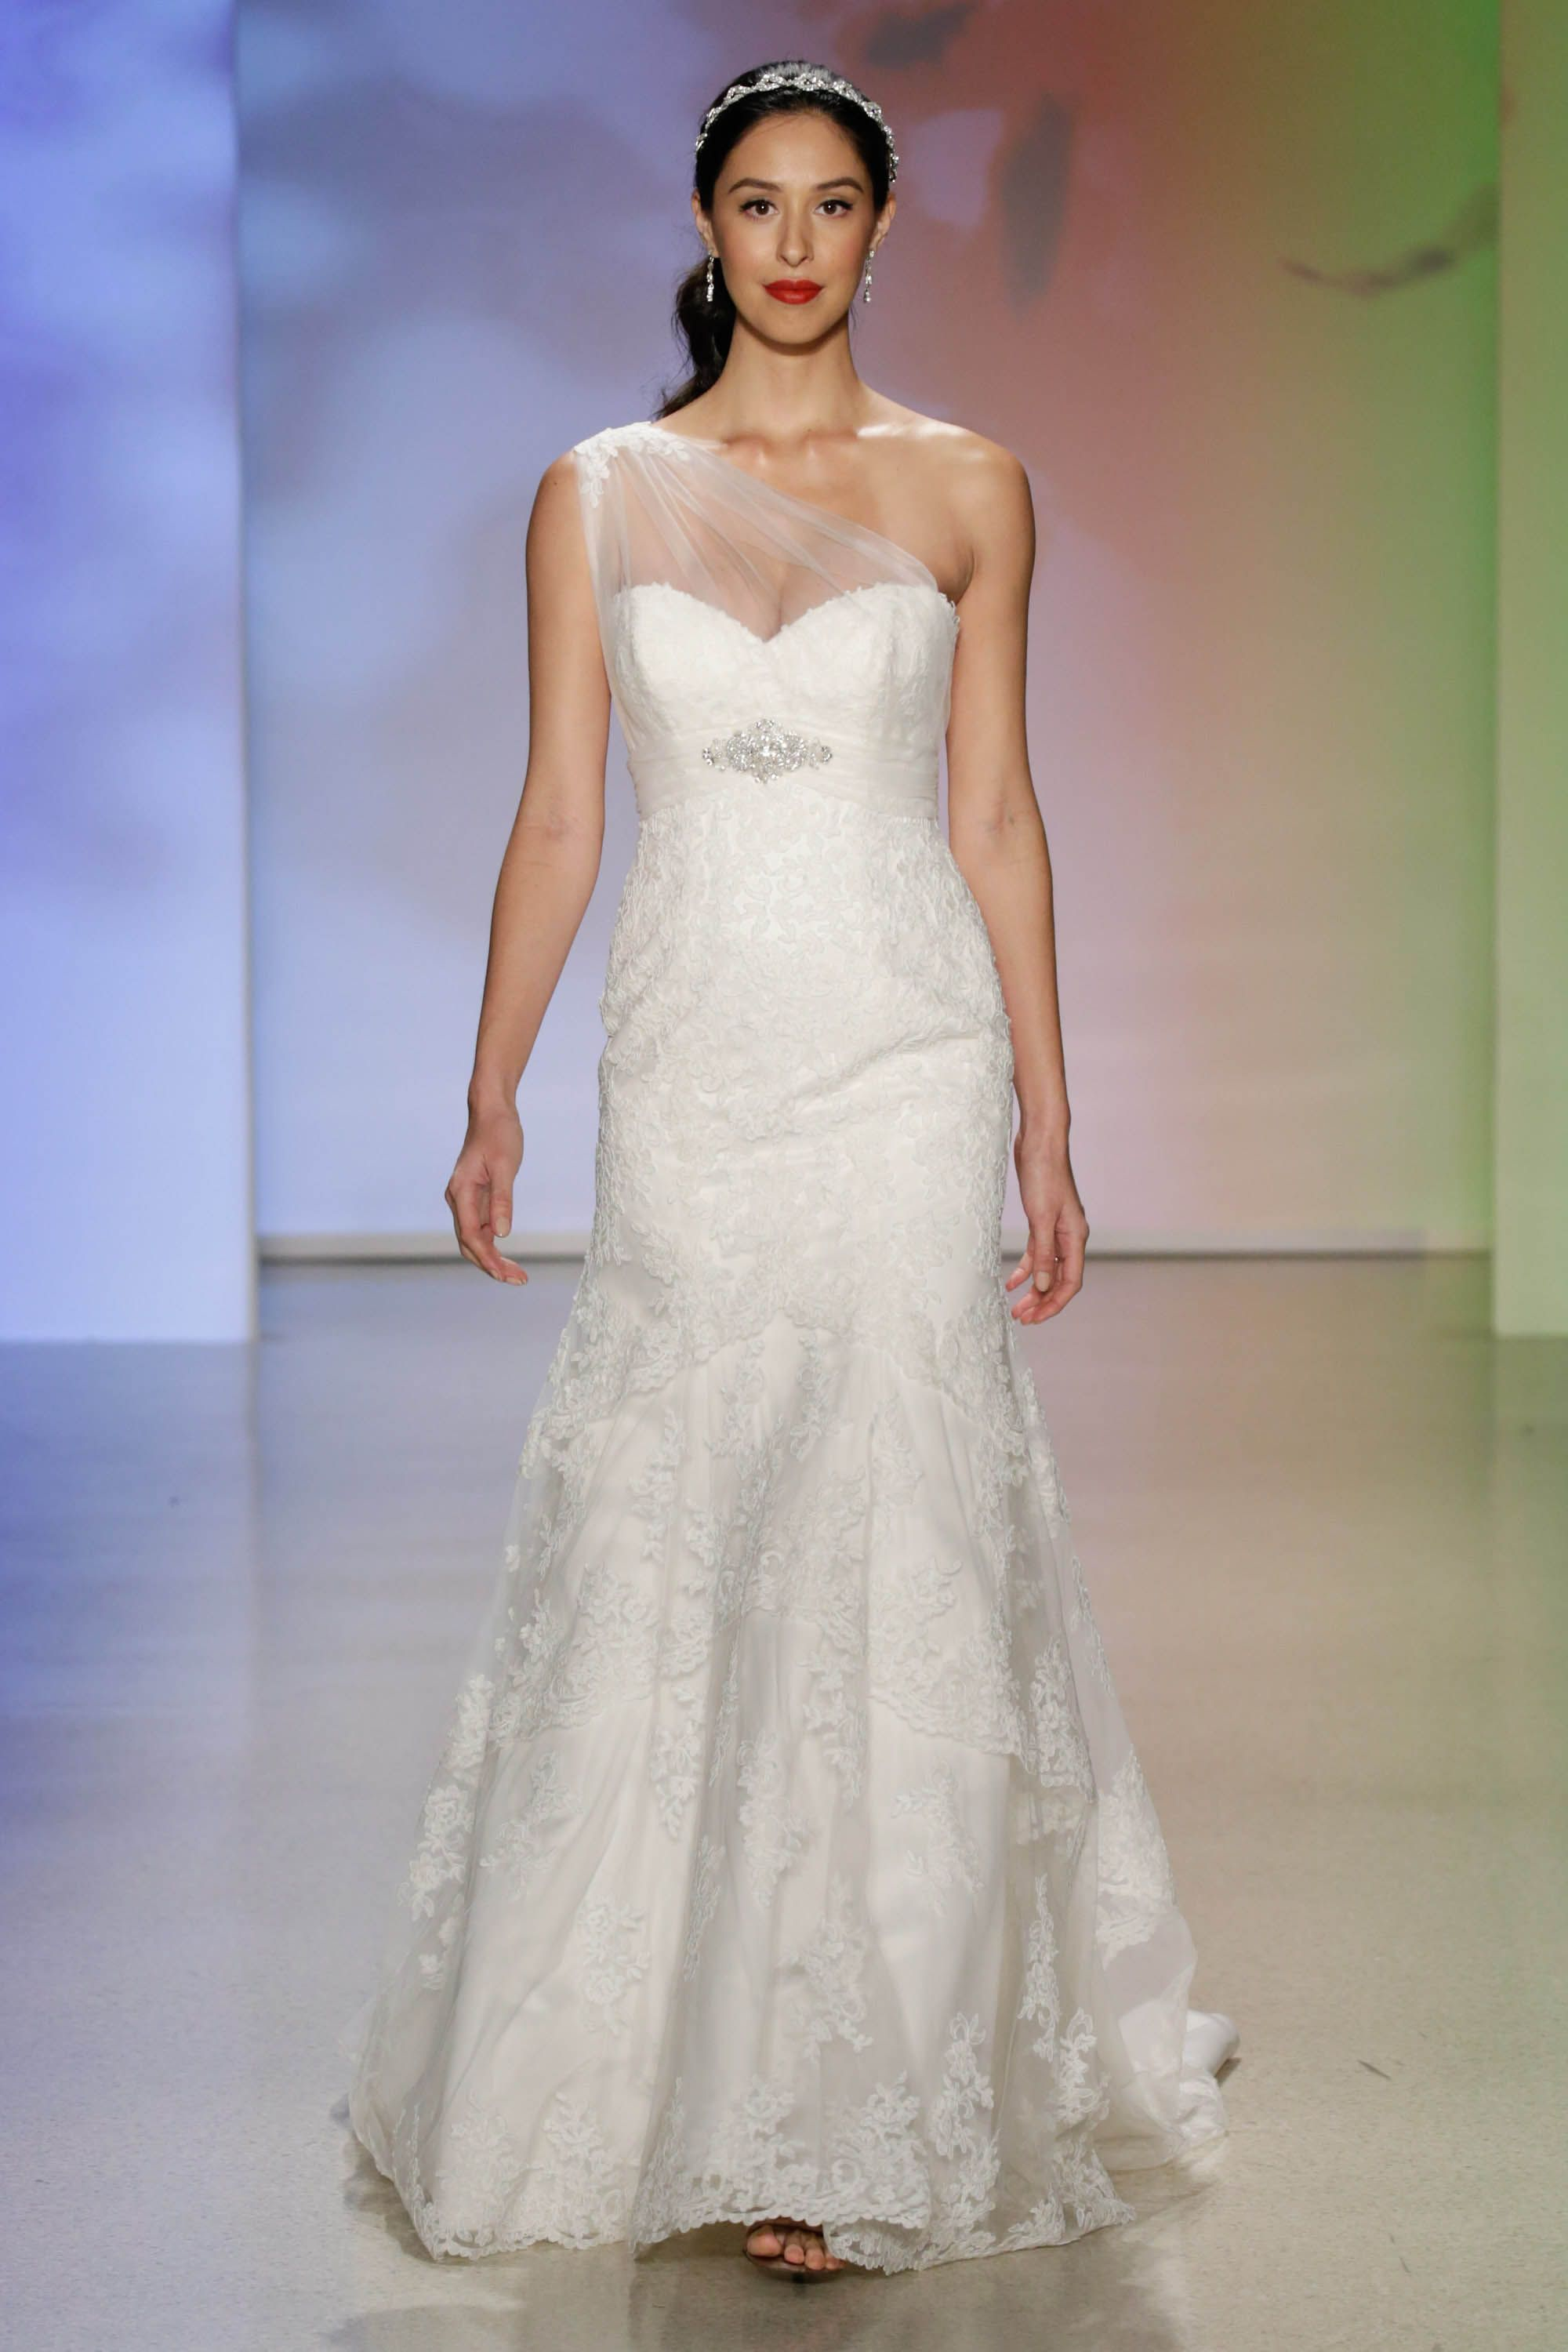 Cinderella wedding dress alfred angelo  Pinterest u The worldus catalog of ideas